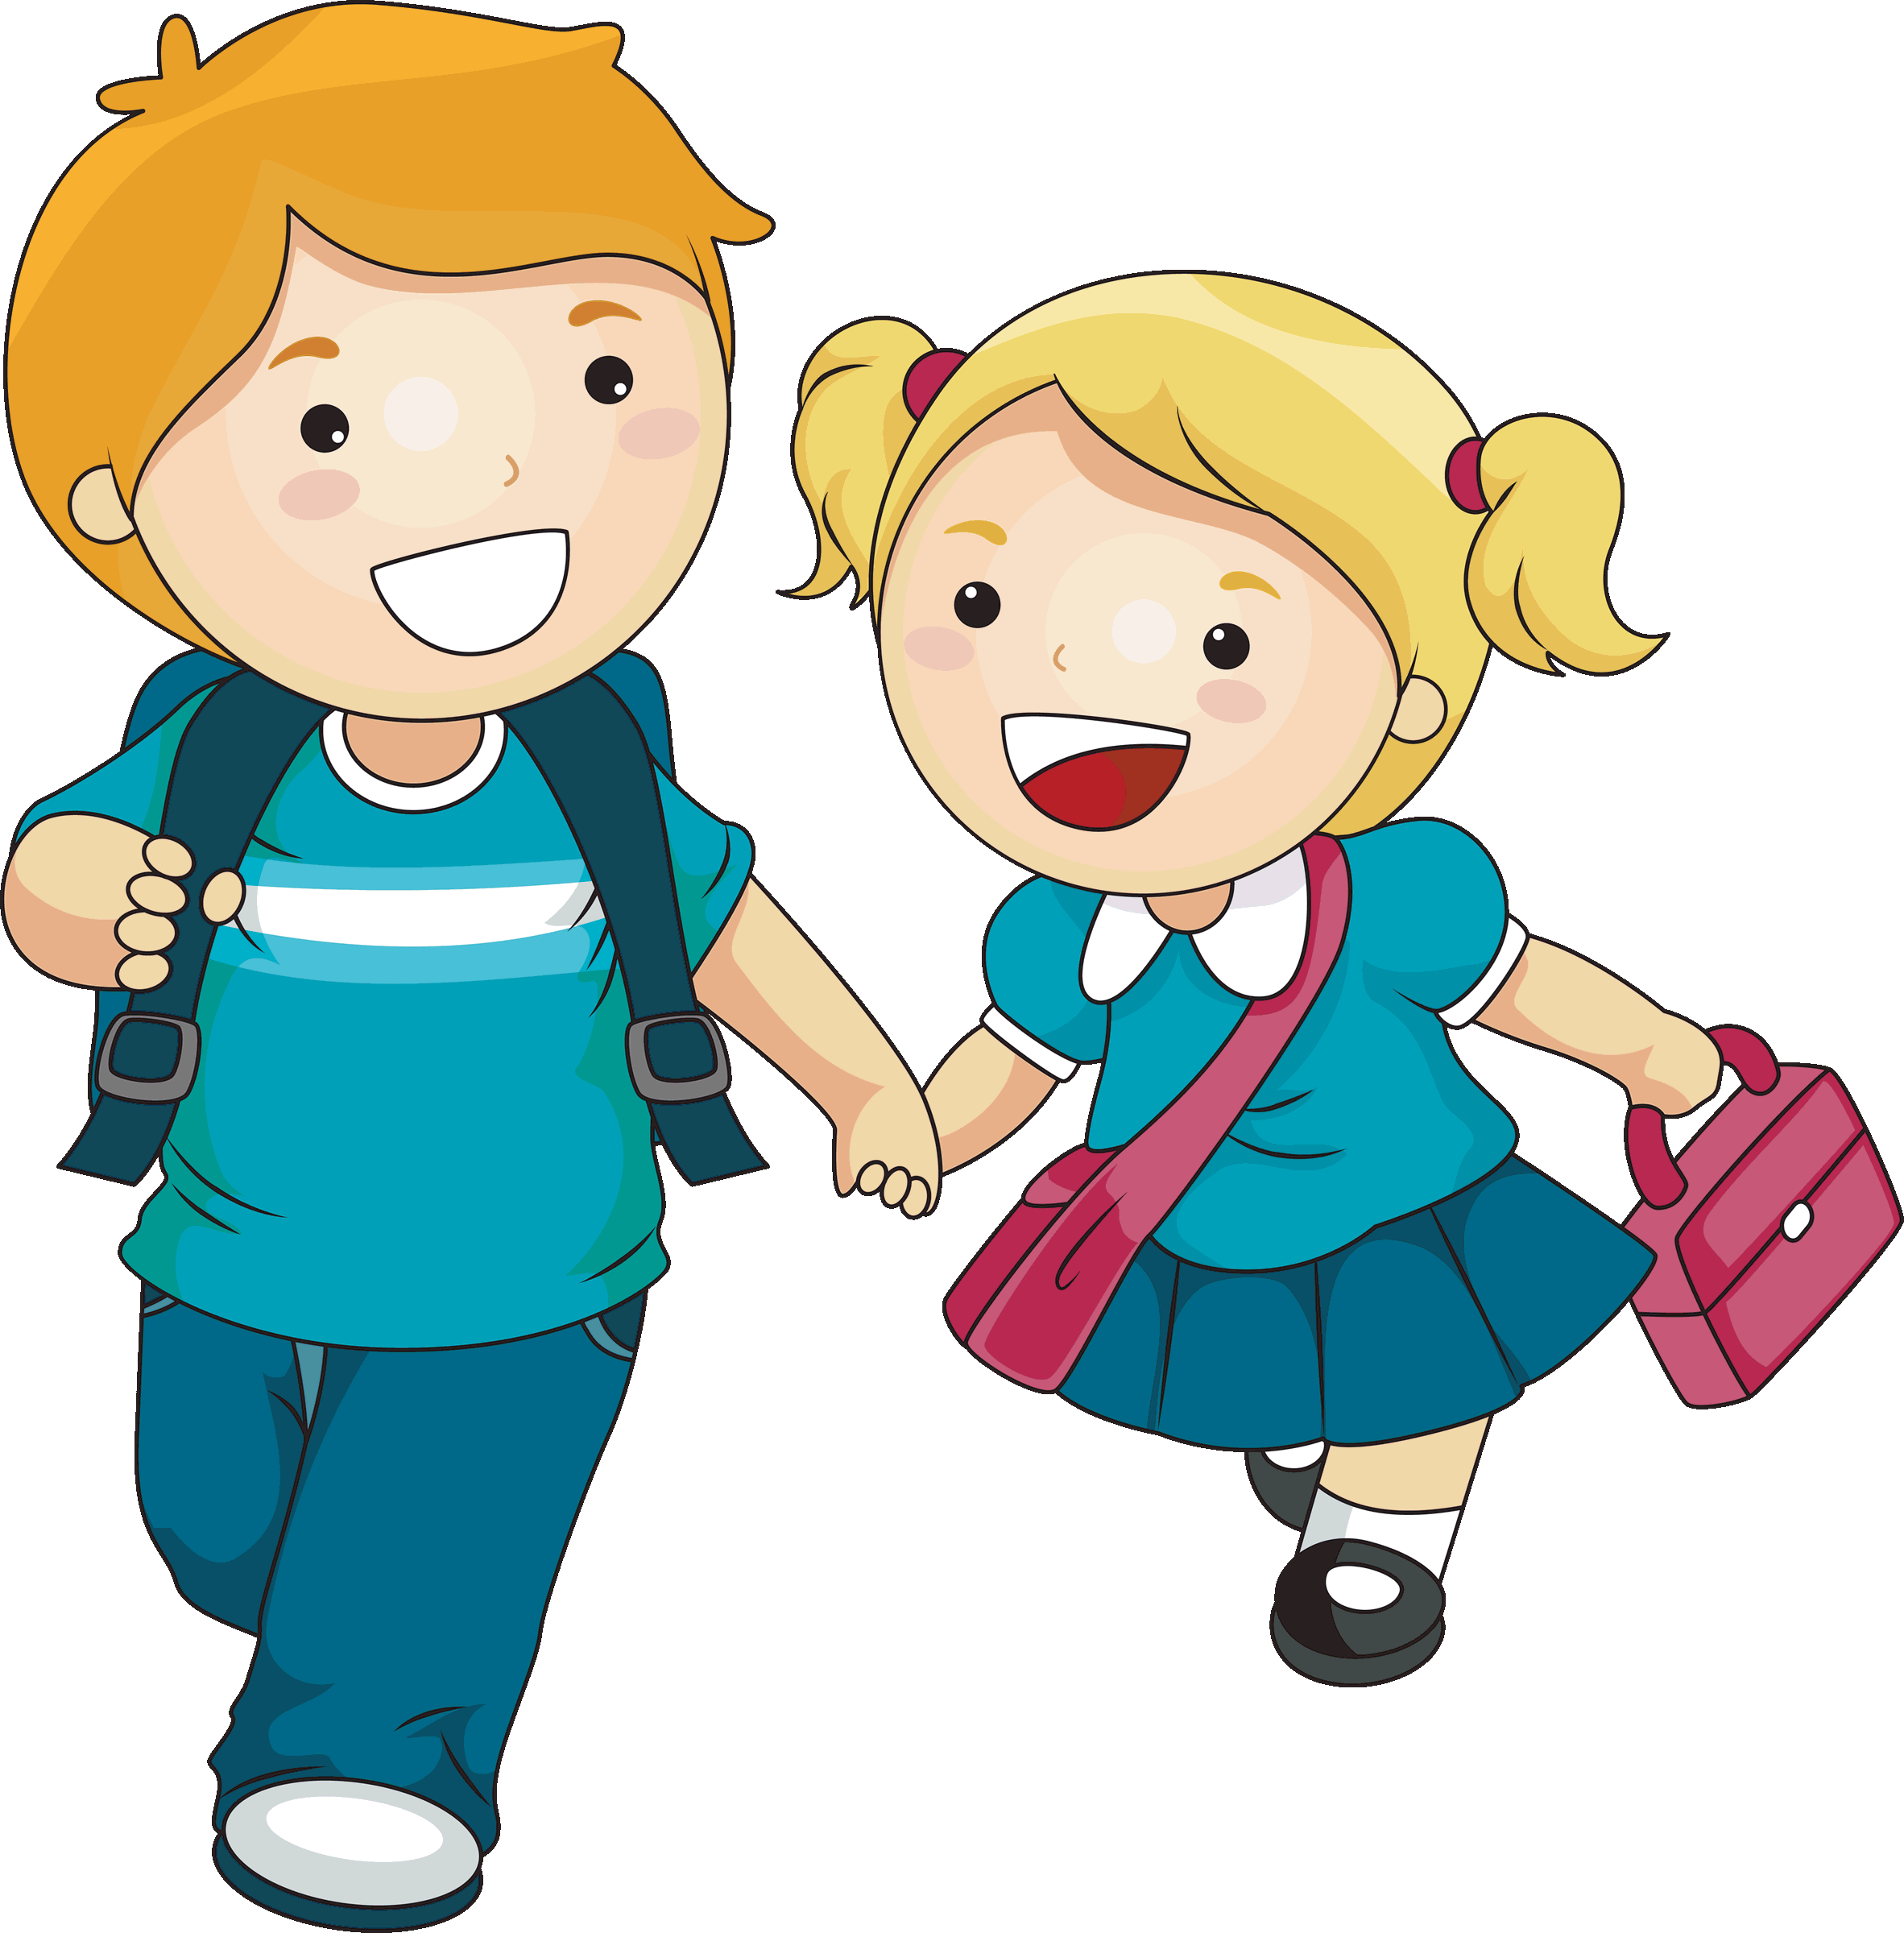 PNG HD Pictures Of Children - 124107